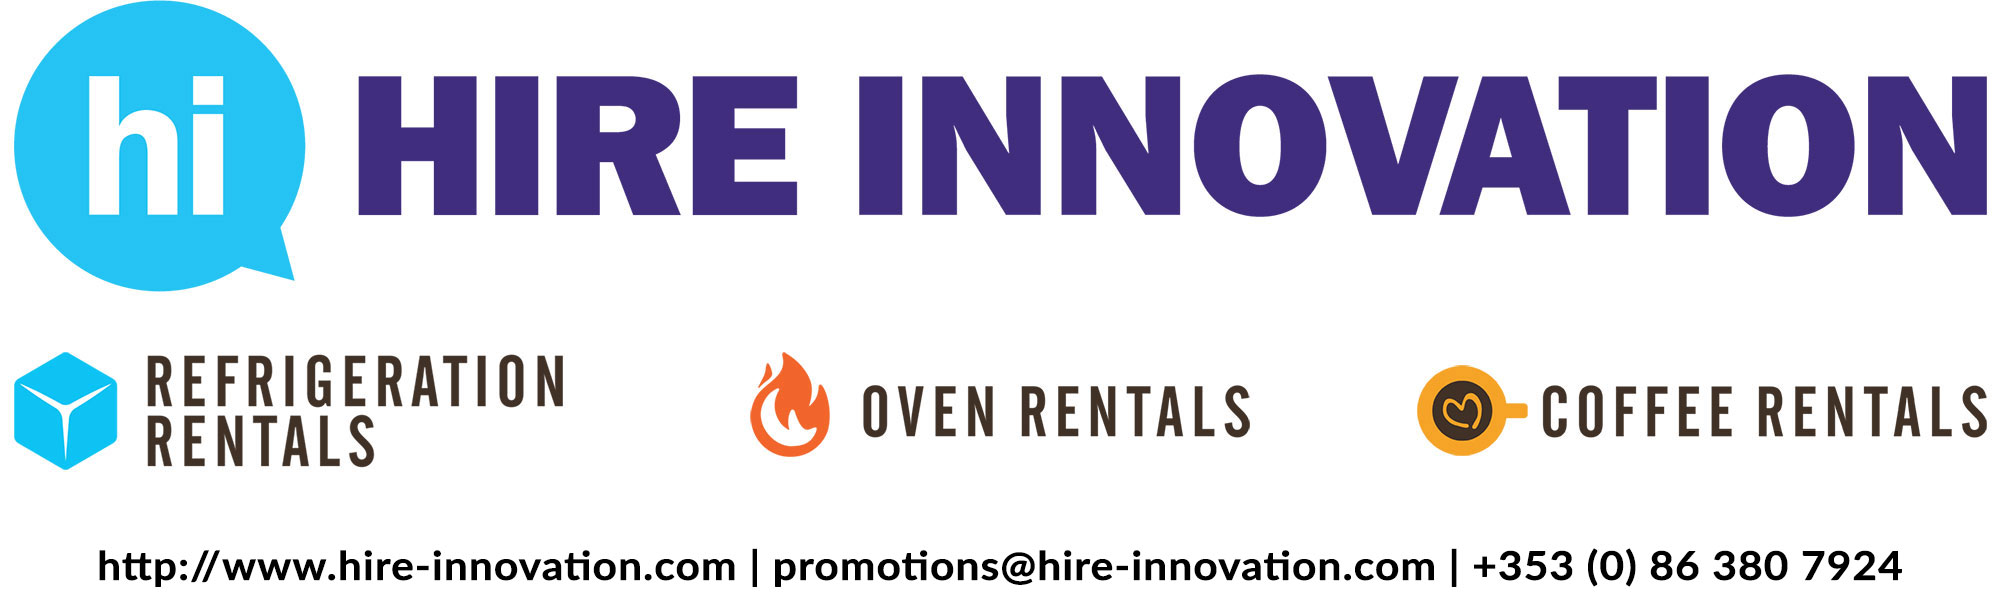 Hire Innovation